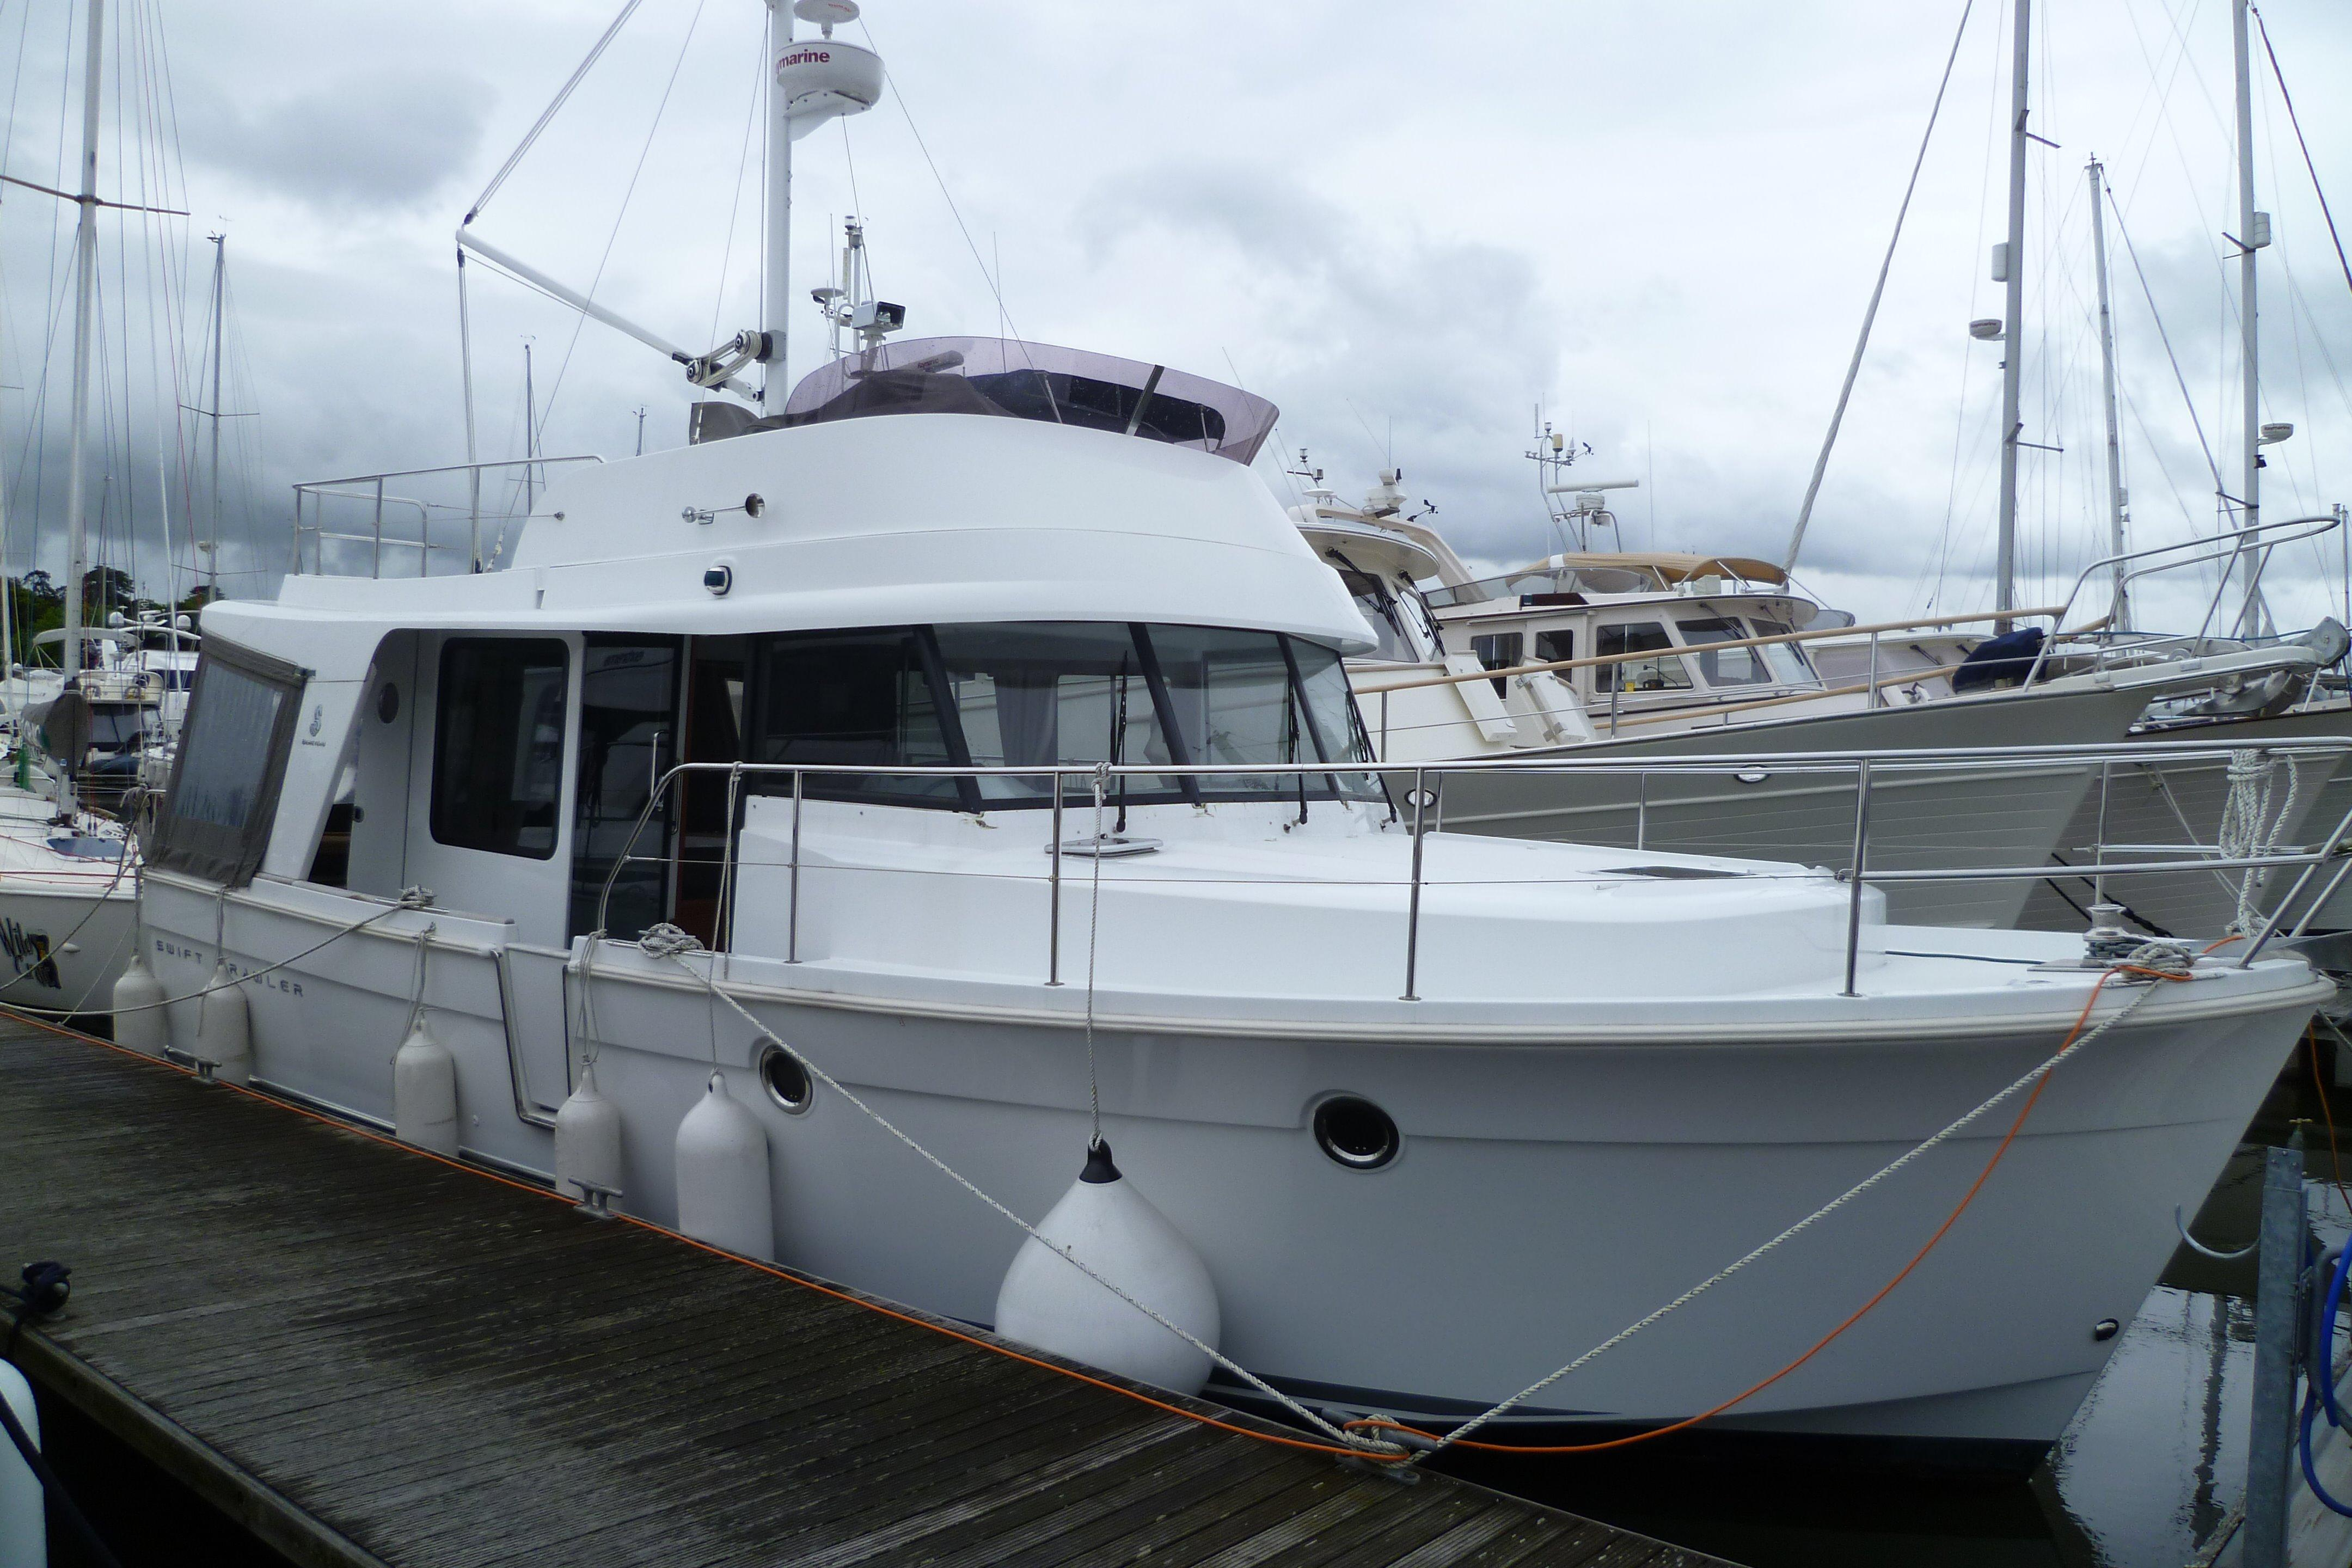 Beneteau Swift Trawler 34 - ST 34 Fly